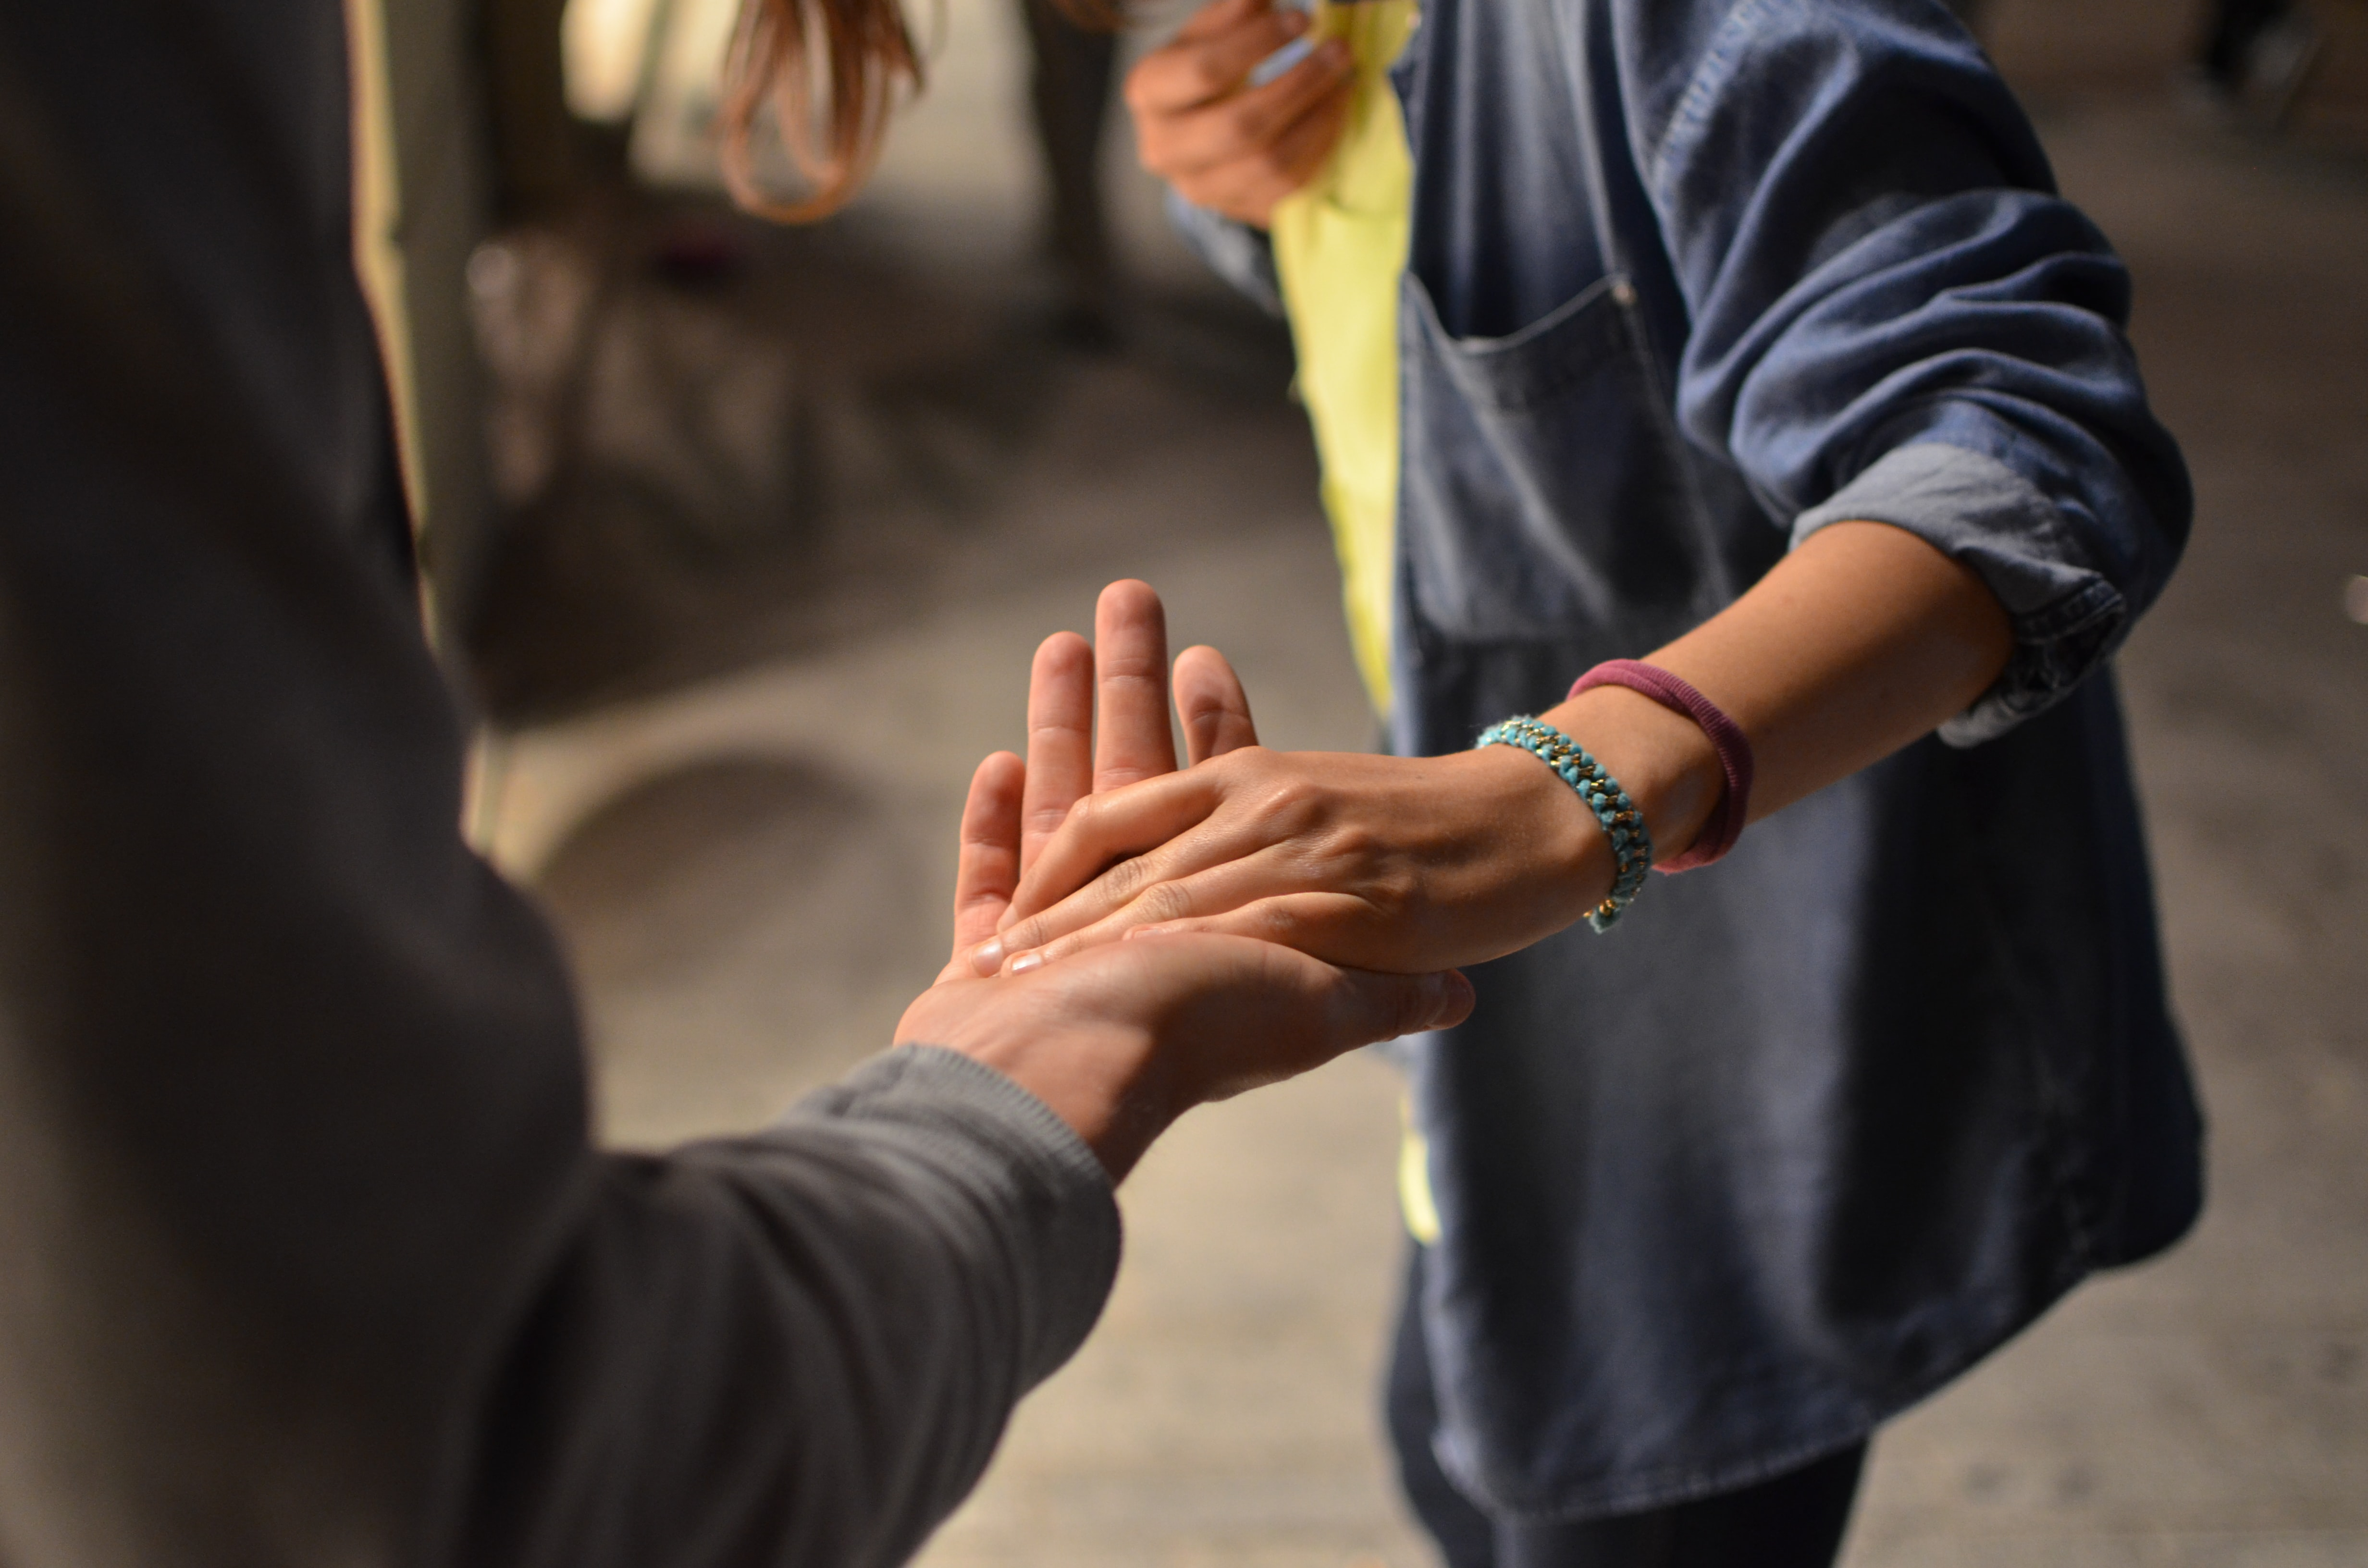 an image of people holding hands discussing the importance of mental health